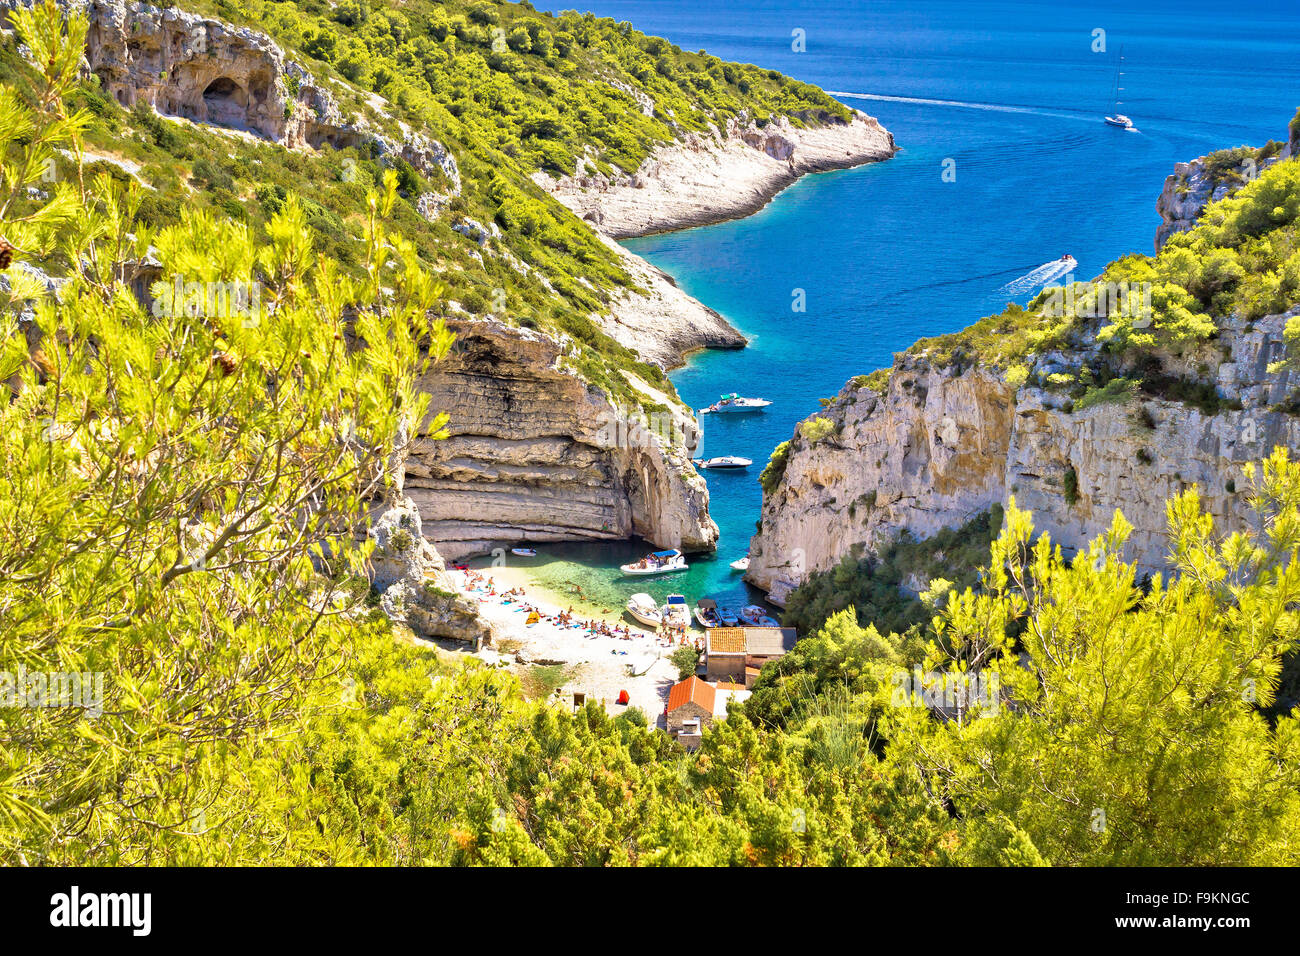 Amazing Stinva beach of Vis island, Dalmatia, Croatia Stock Photo